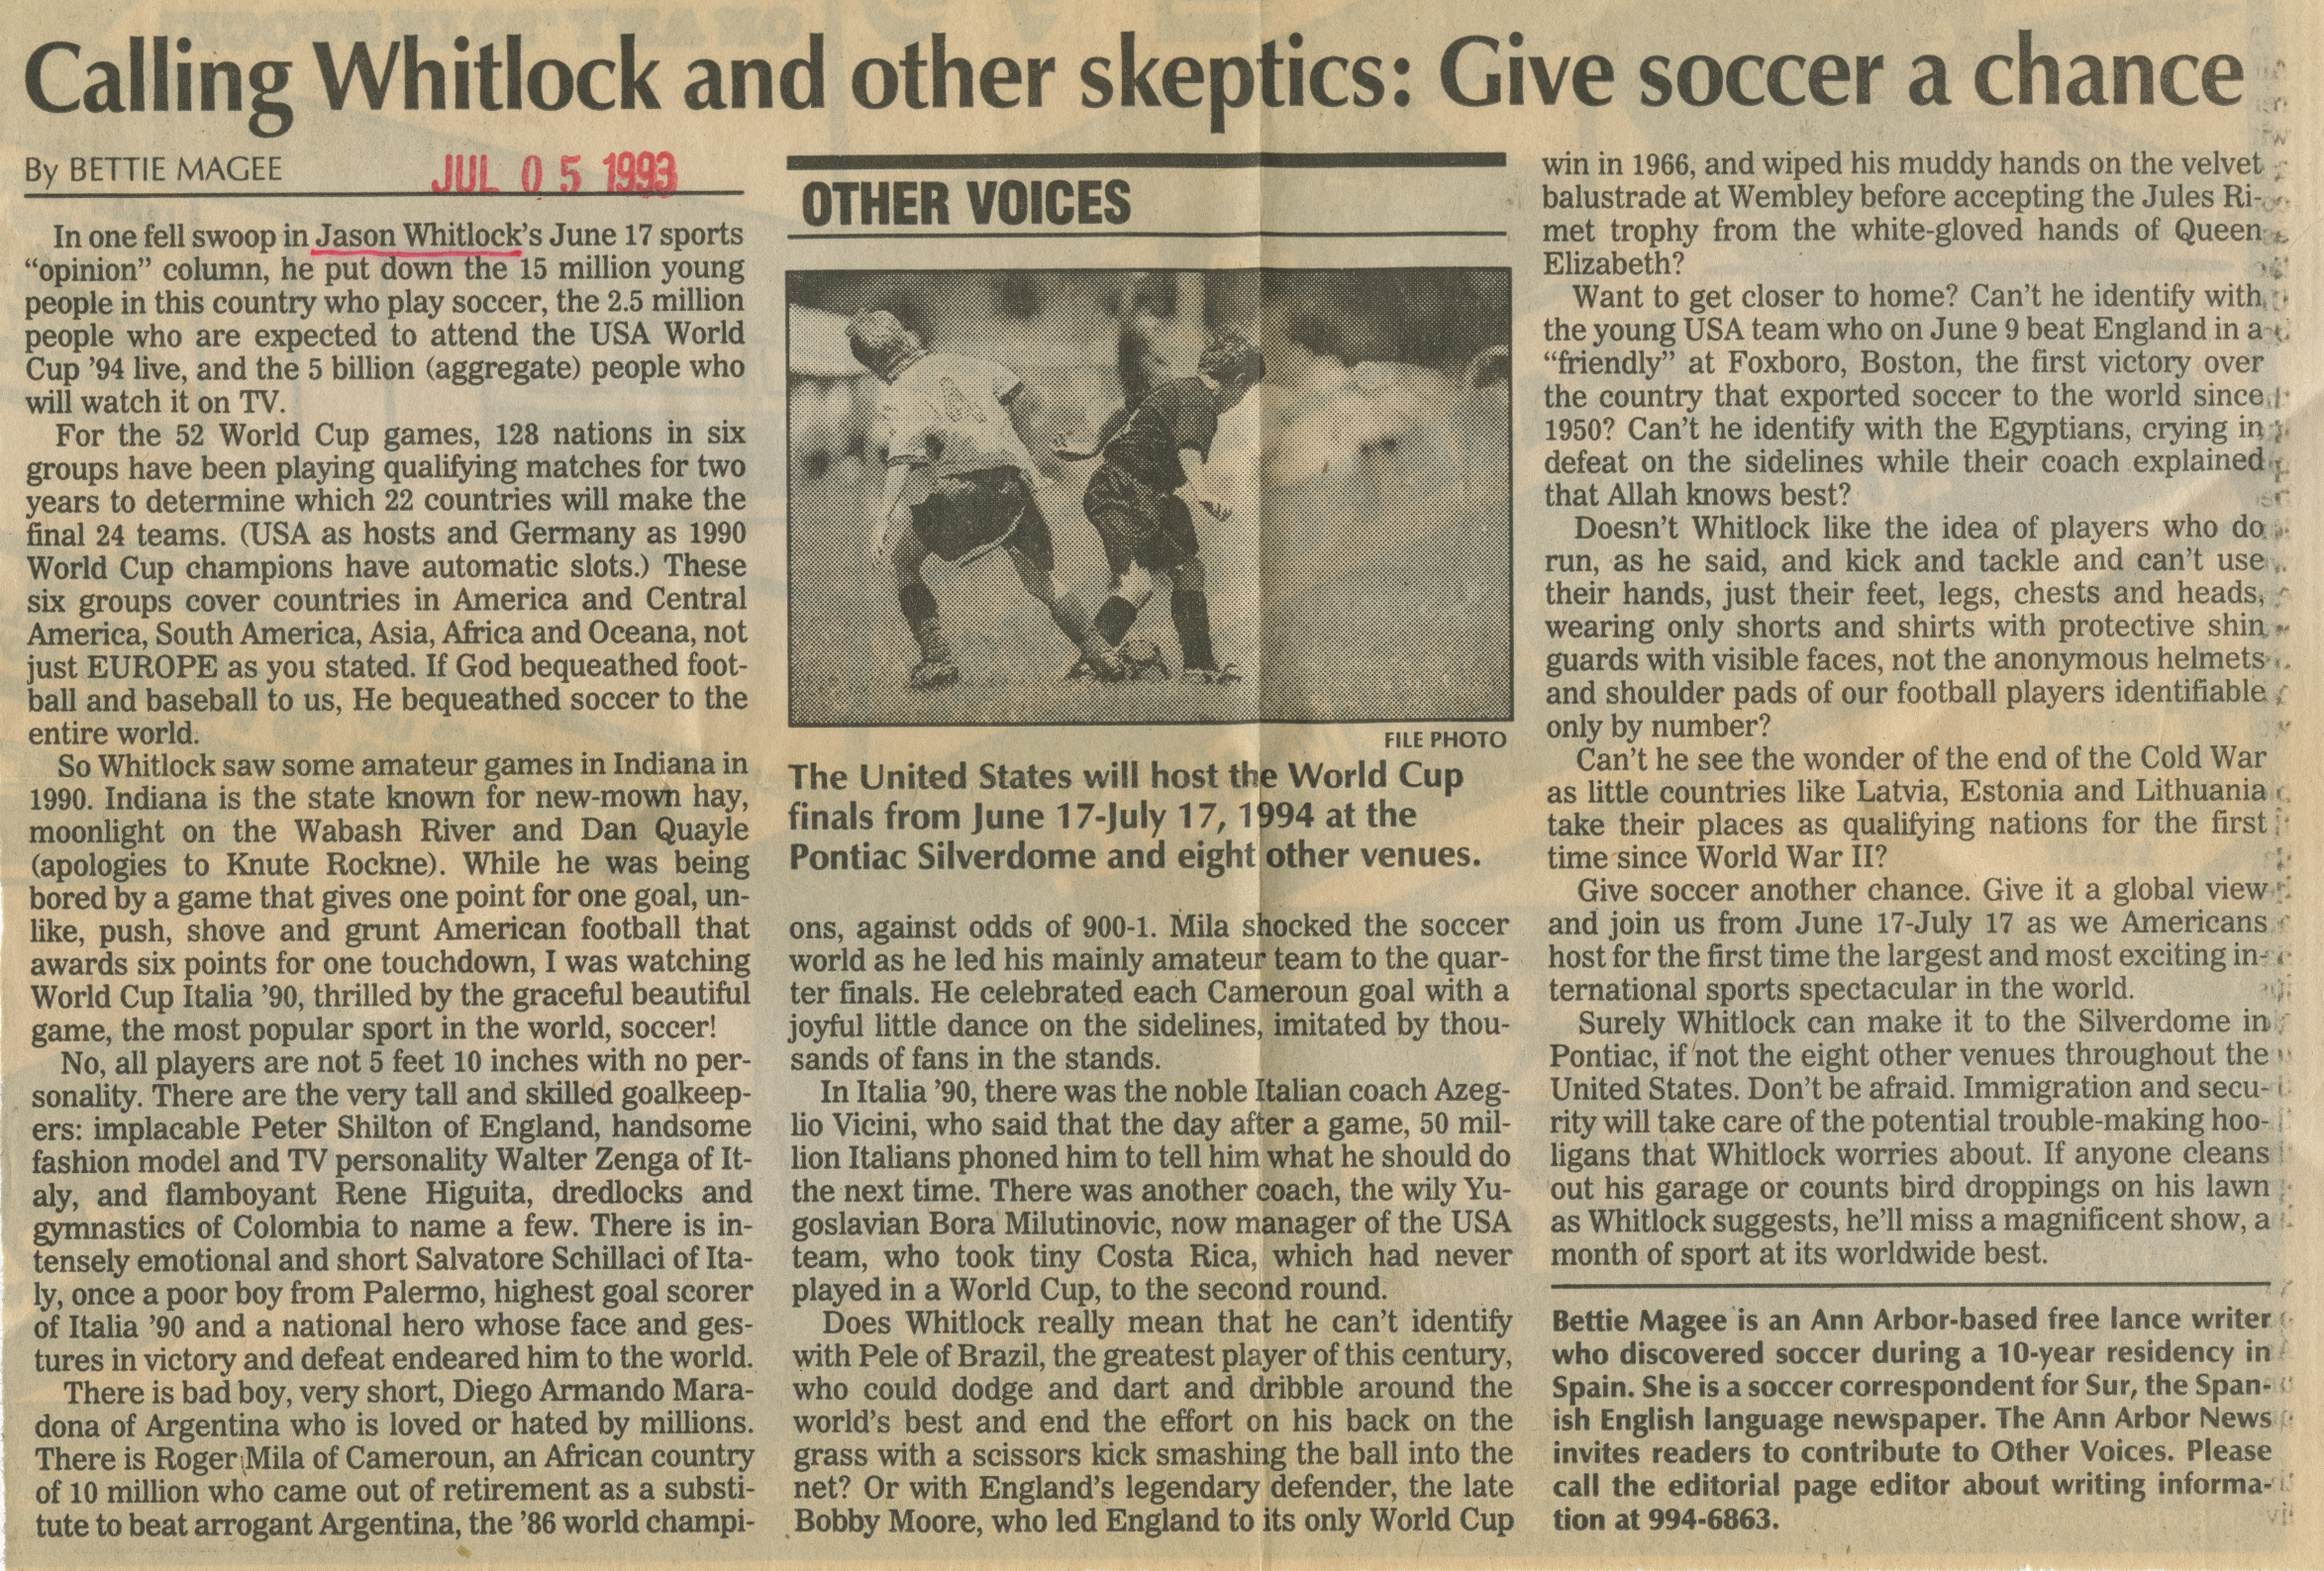 Calling Whitlock and other skeptics: Give soccer a chance image